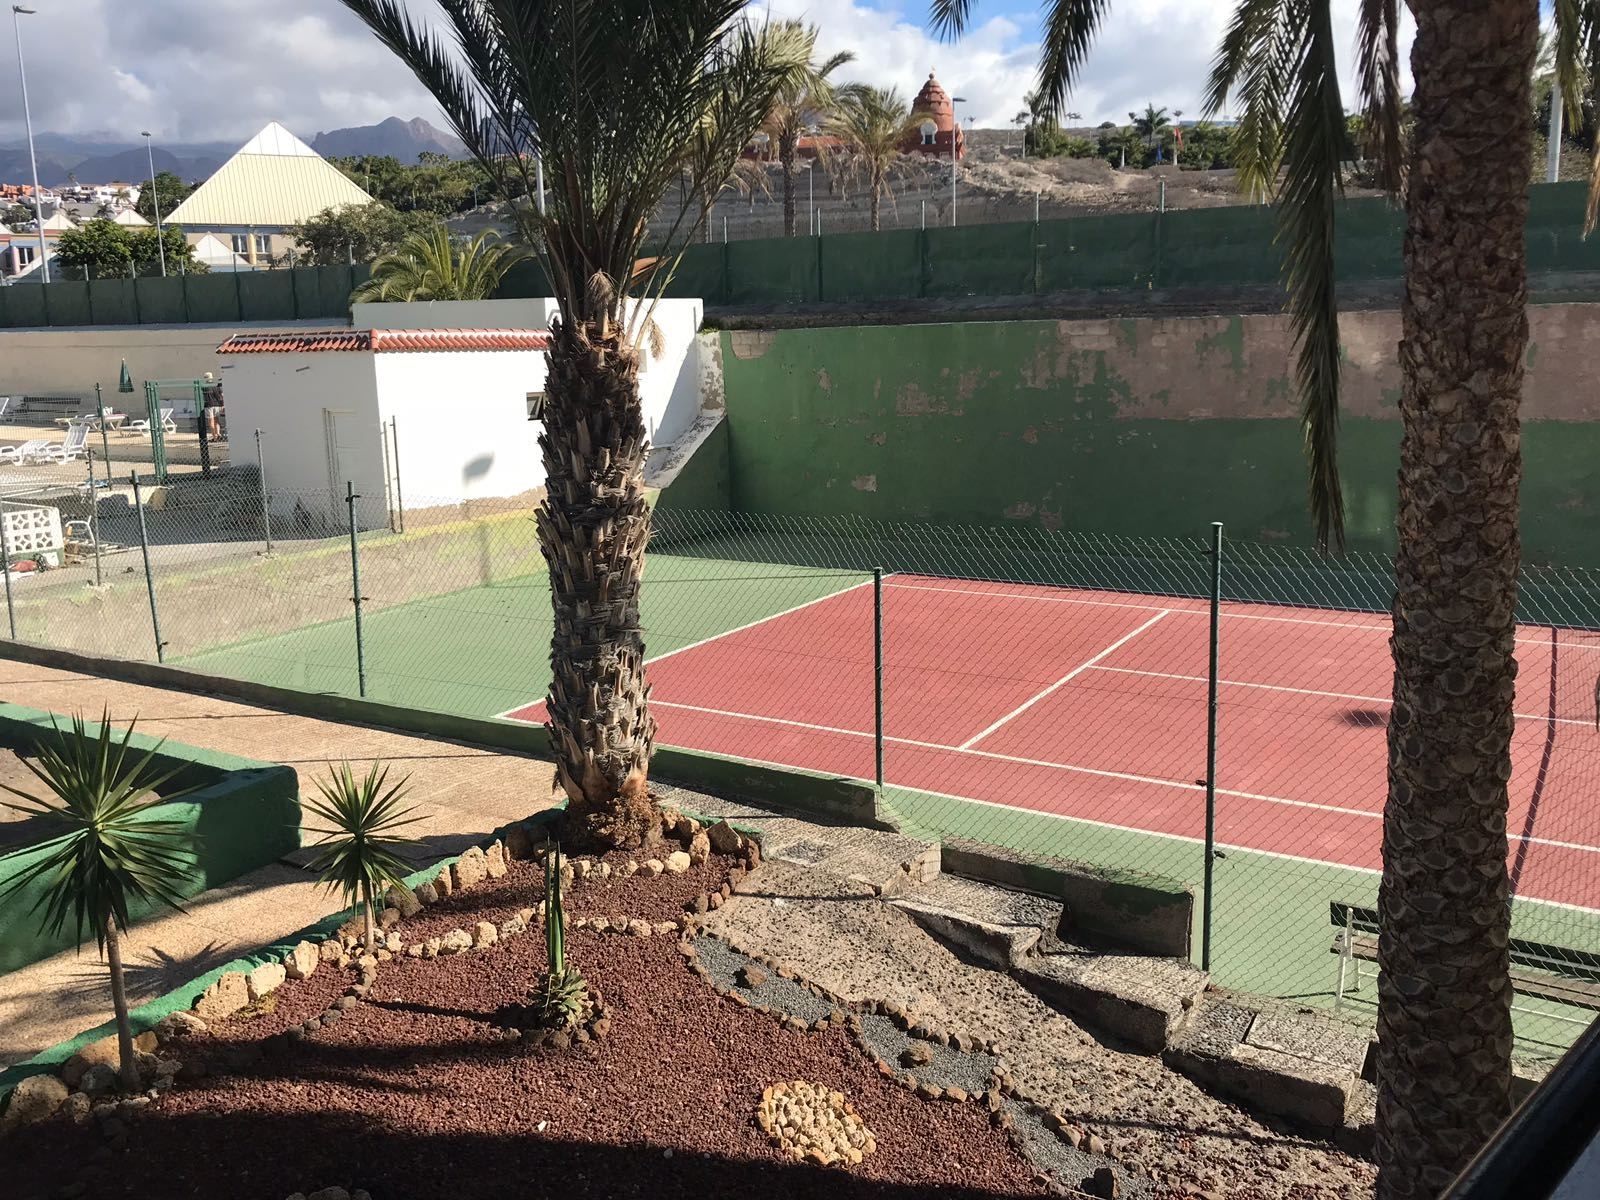 Properties for Sale in Tenerife, Canary Islands, Spain | SylkWayStar Real Estate. 1 Bedroom apartment Los Agaves. Image-22285